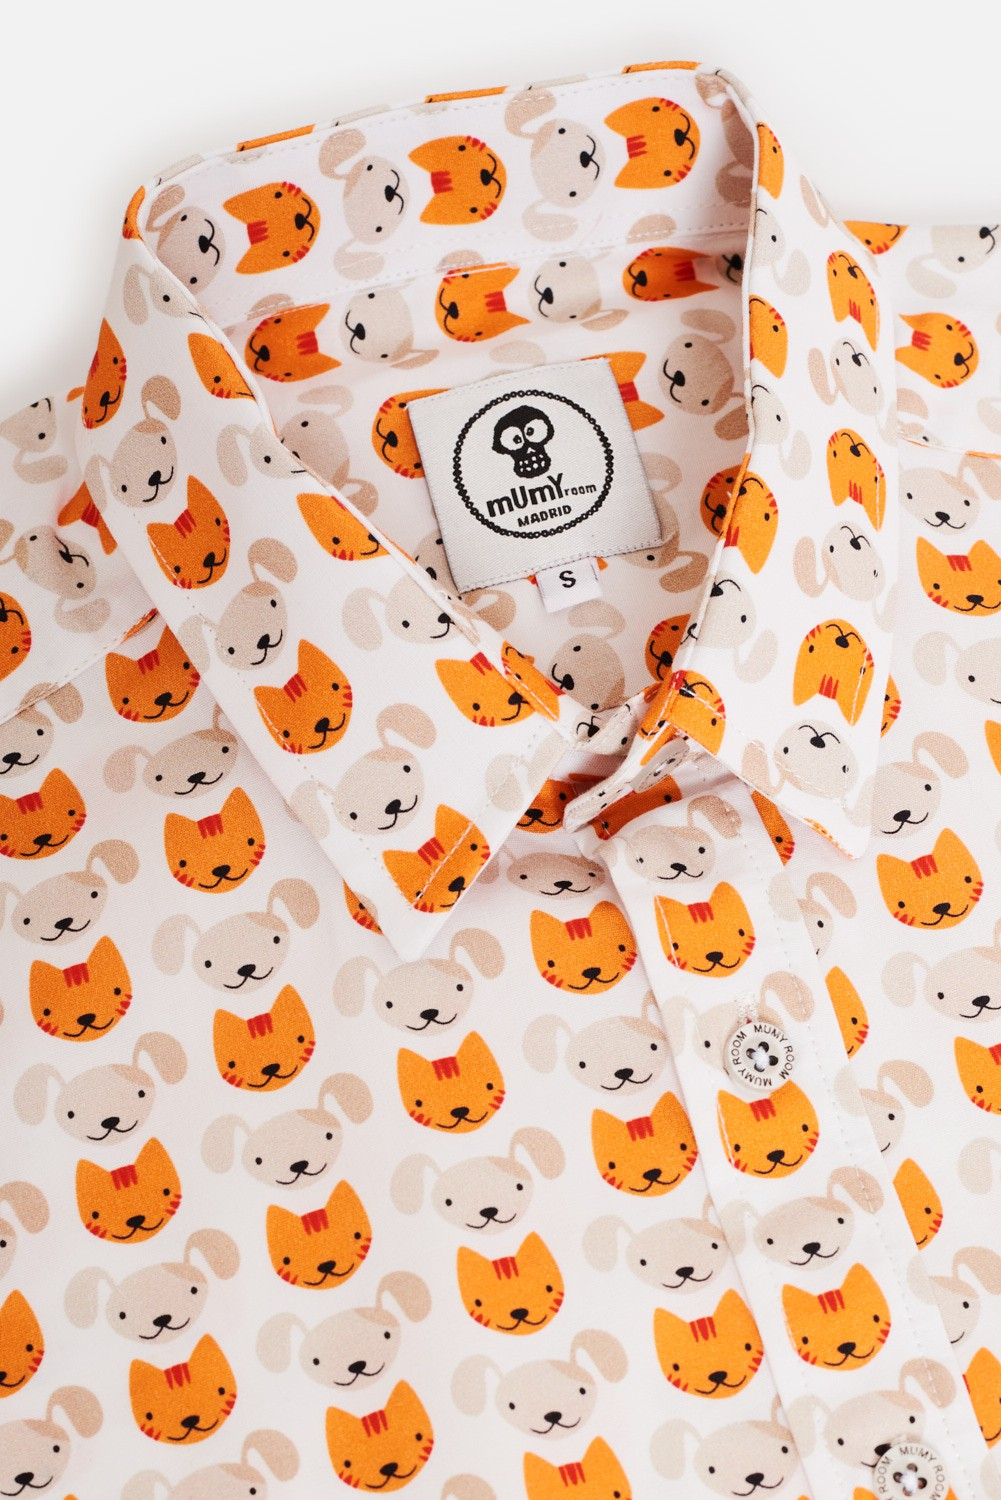 CAMISA ESTAMPADA DE NIÑO CAT-DOG-CAT